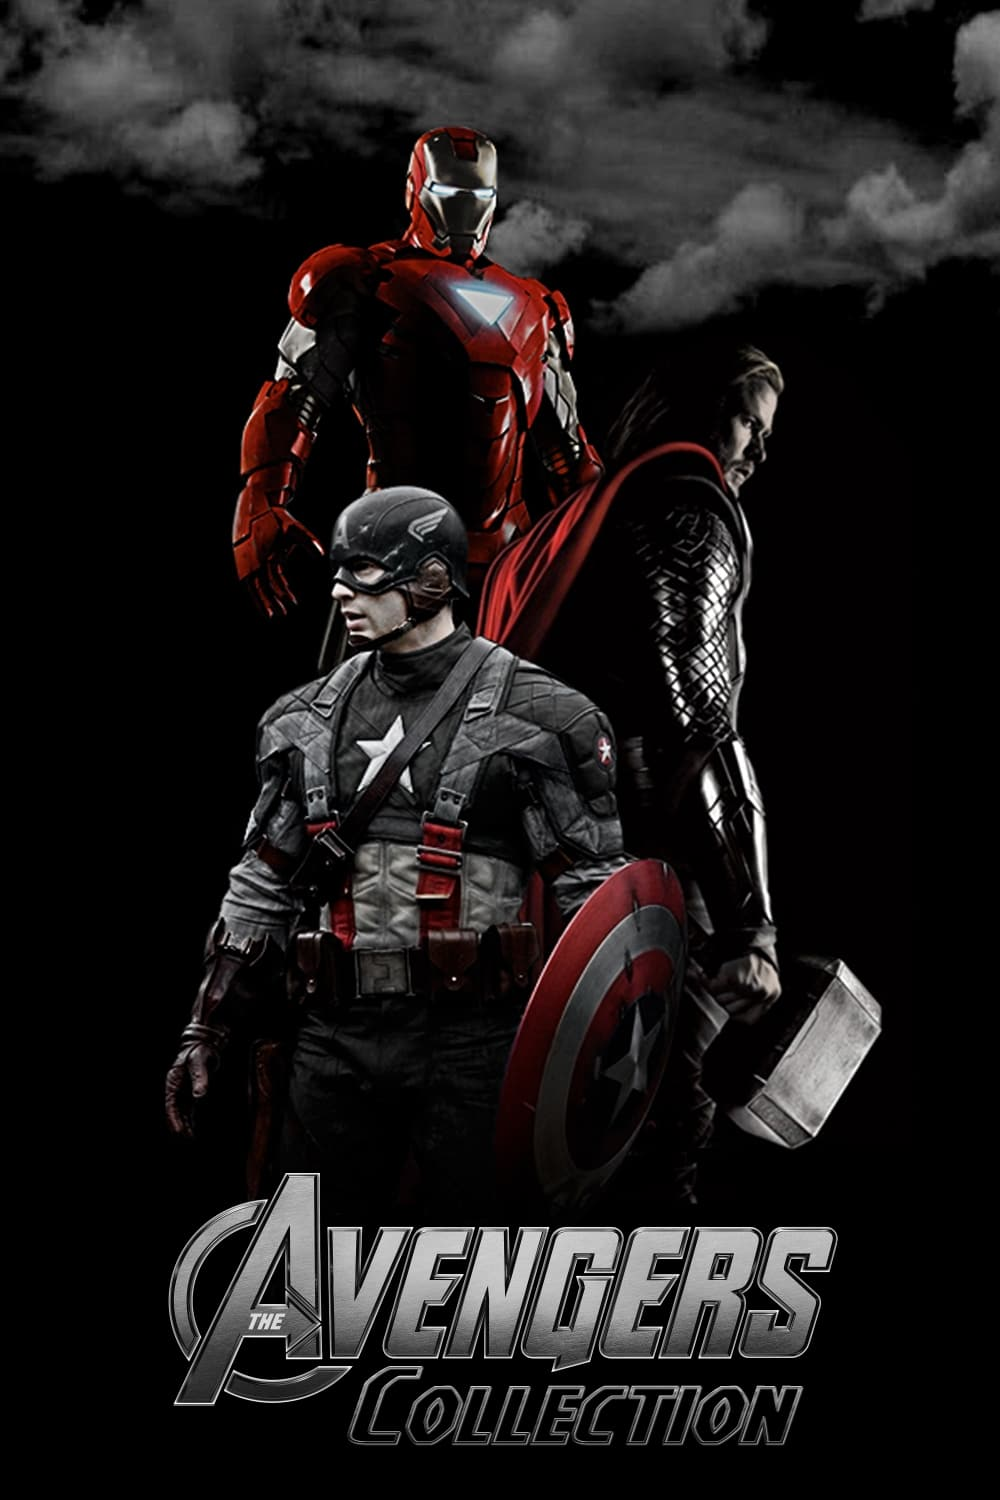 The Avengers: All Movies From The Avengers Collection Saga Are On Movies